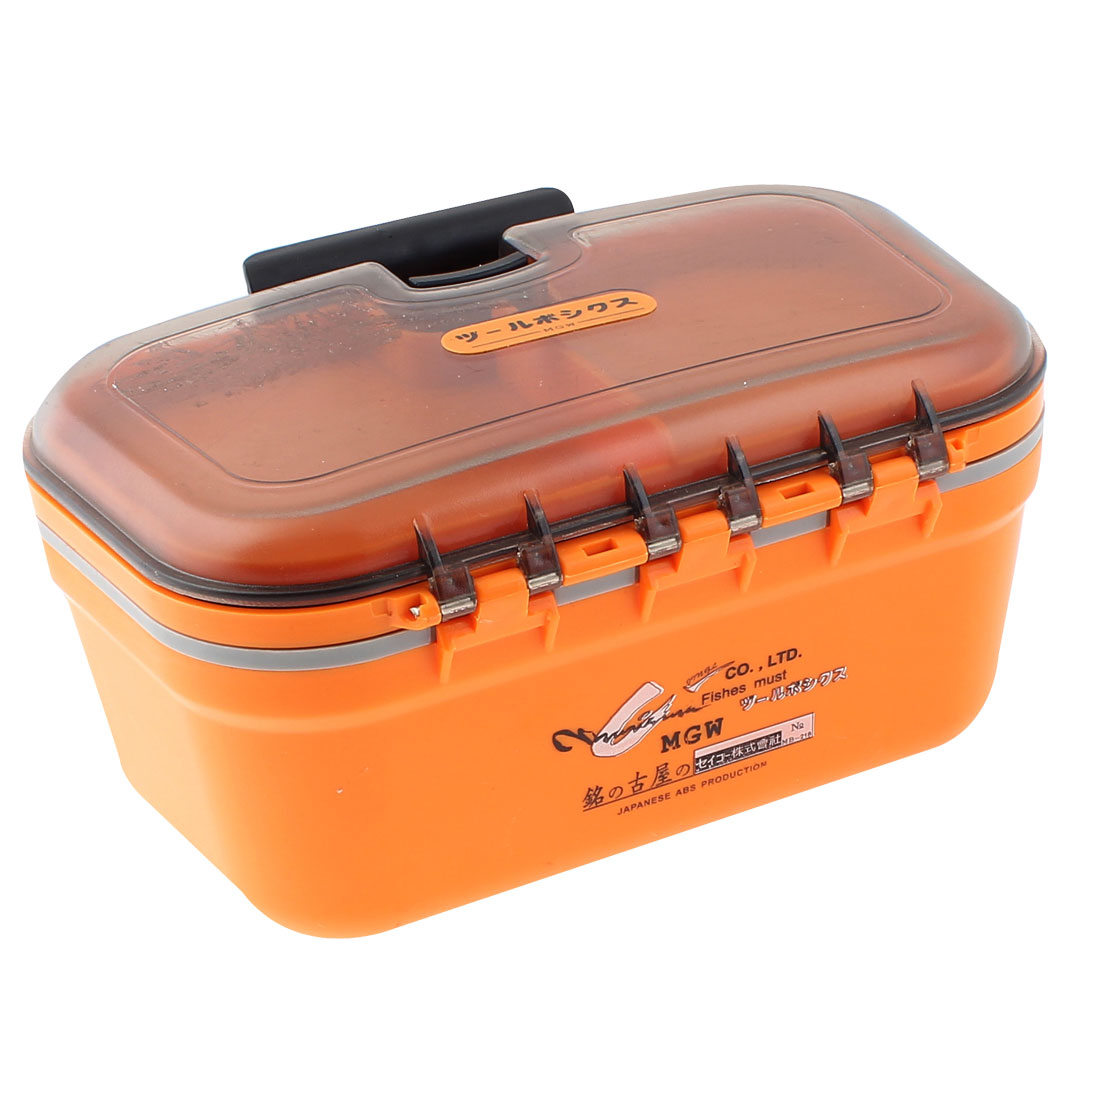 Home Family Save Room 2 Layers 4 Compartments Storage Case Box Container Orange